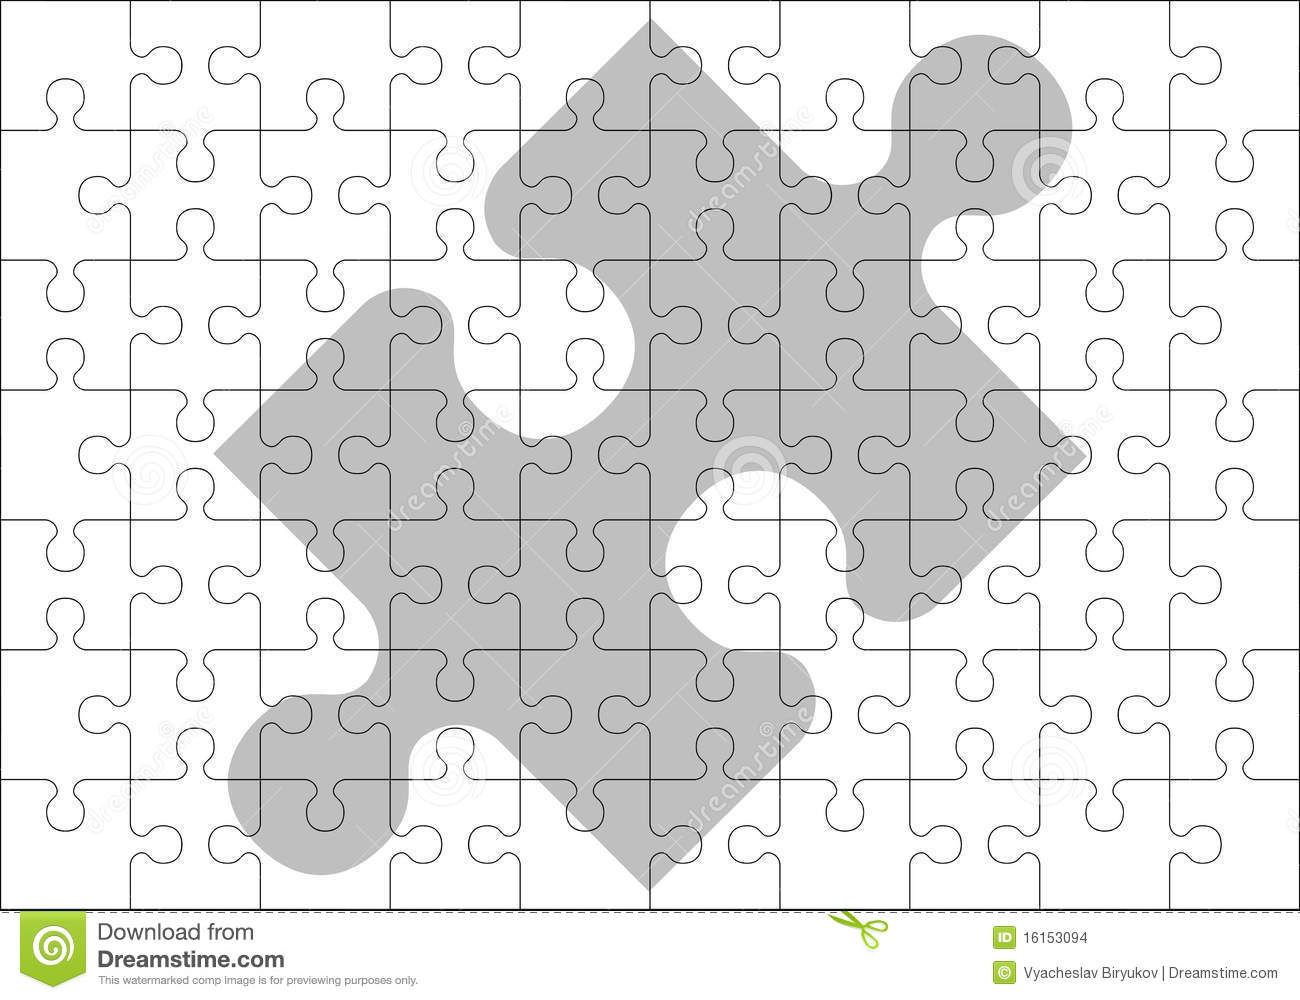 Stencil of puzzle pieces stock vector. Illustration of finishing ...